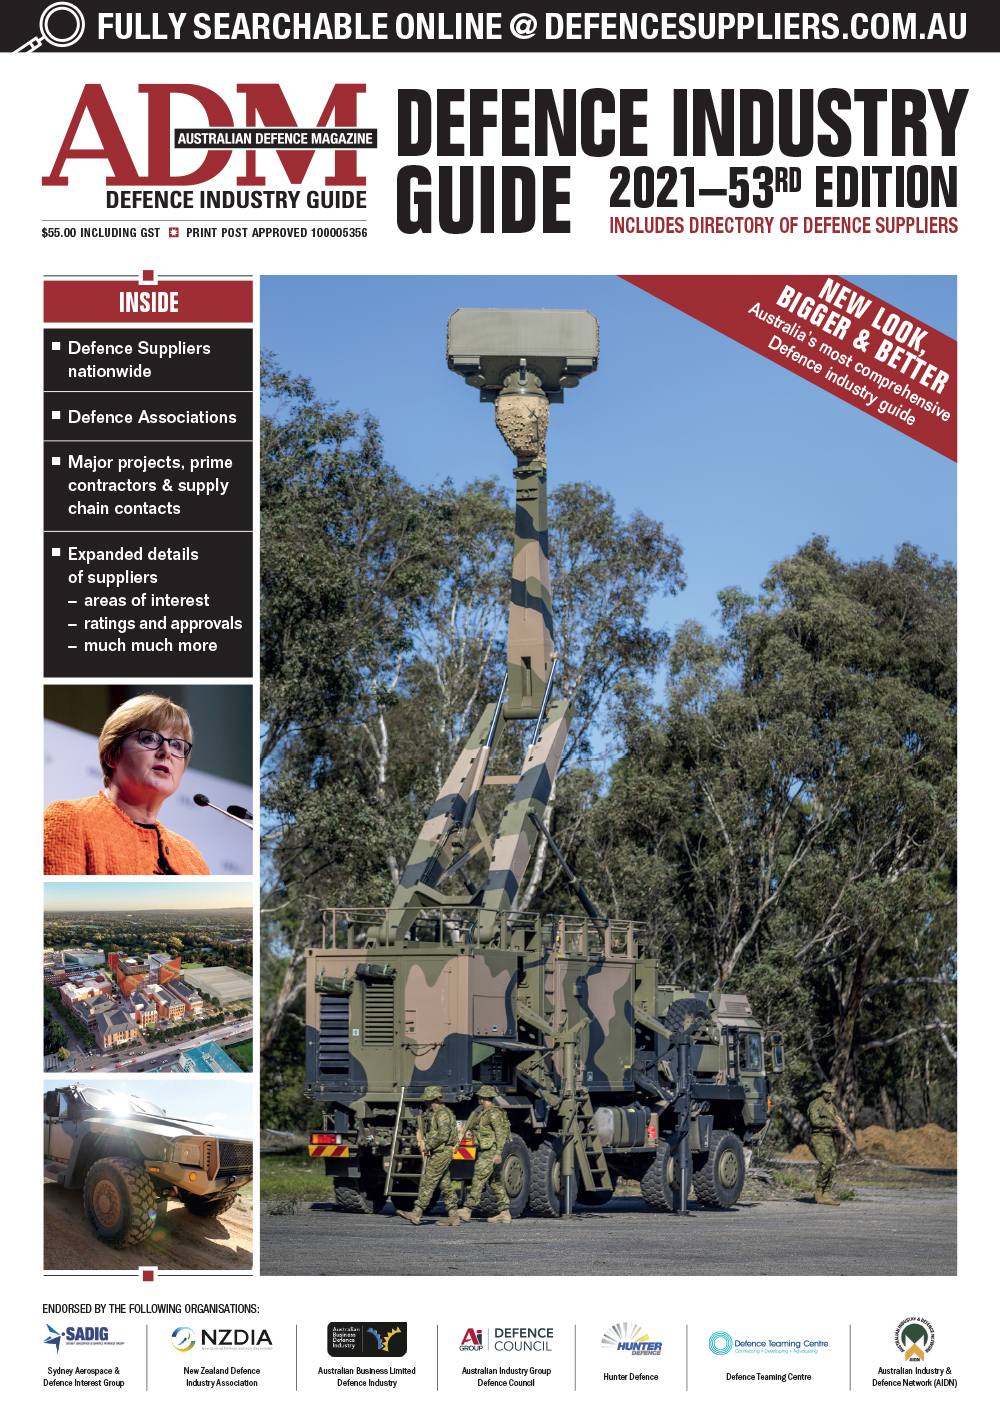 Directory of Defence Suppliers - Australian Defence Magazine